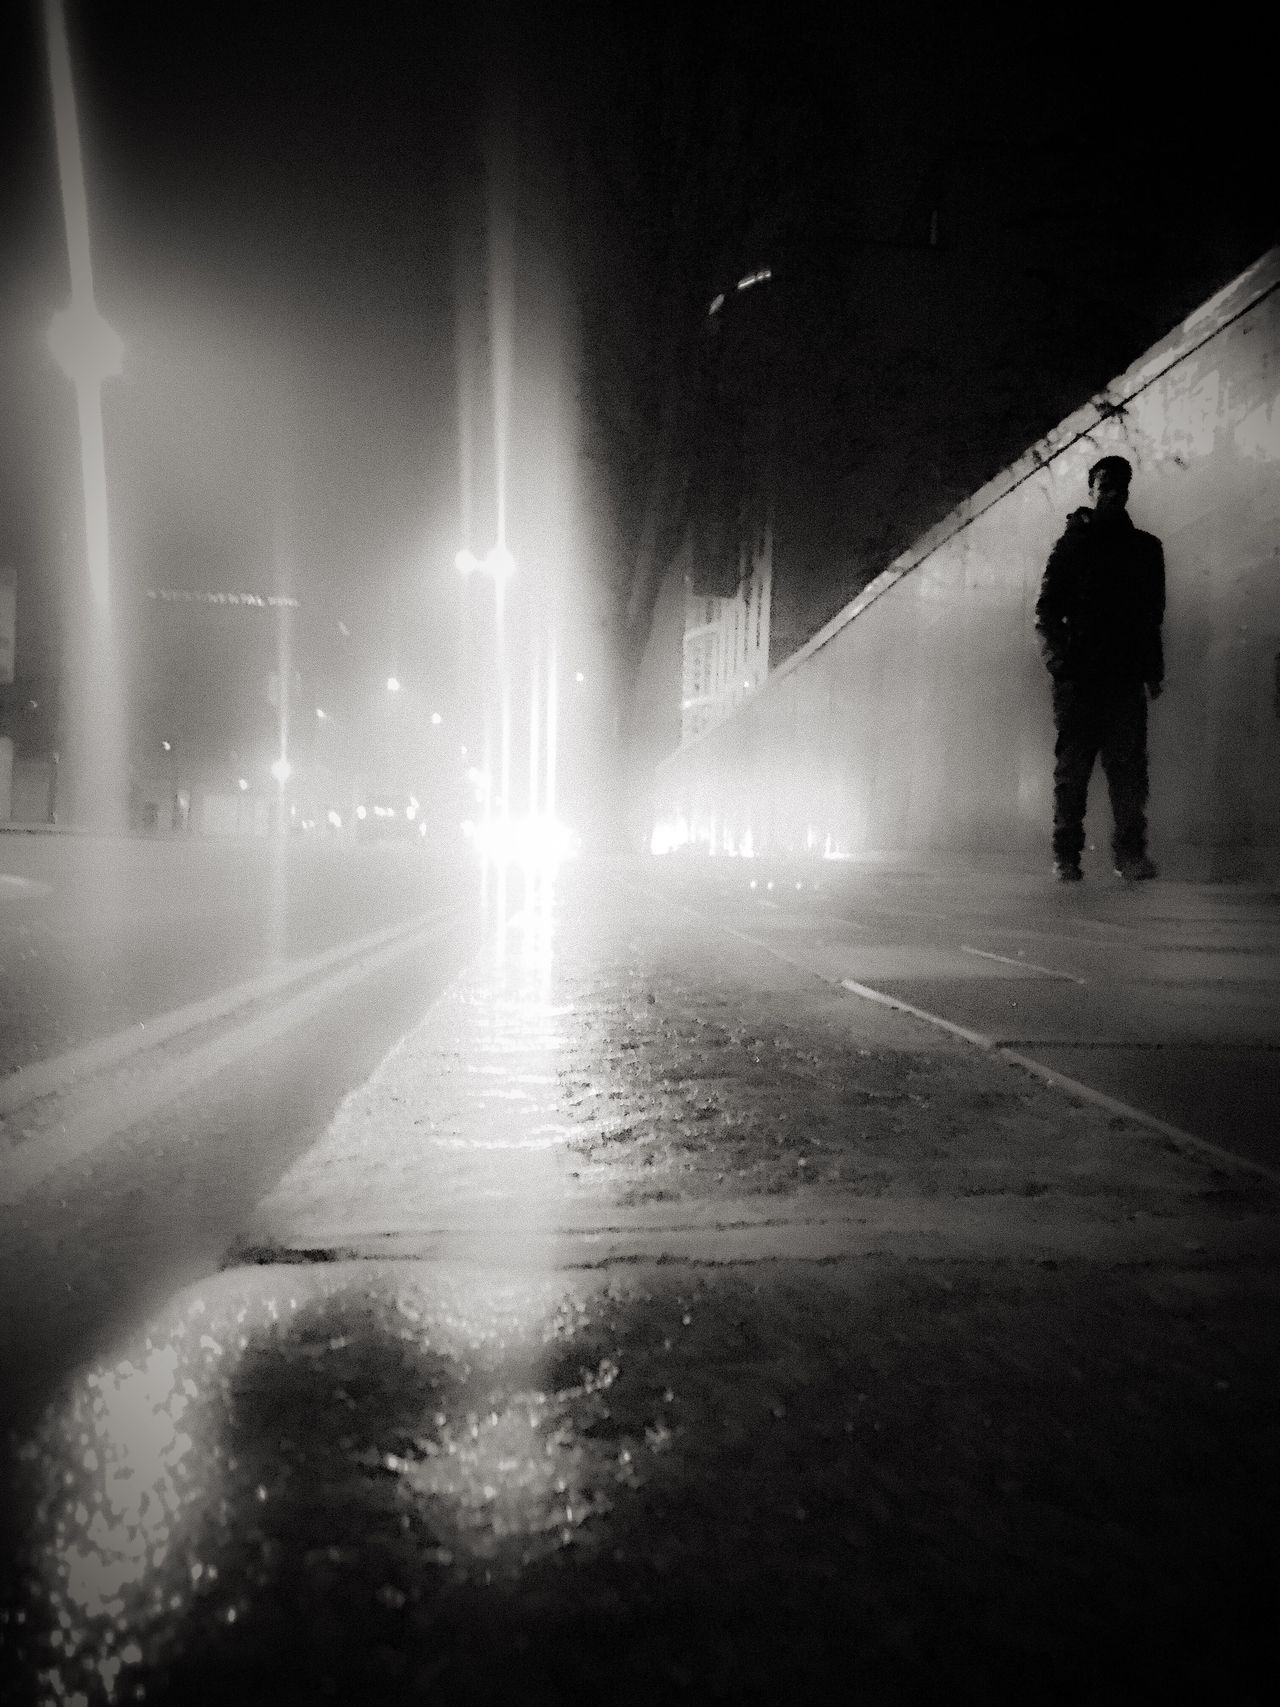 Illuminated Night Transportation Full Length One Person Real People Men Indoors  One Man Only Street Photography EyeEm Best Shots Black And White Fresh On Eyeem  The Week Of Eyeem EyeEm Best Shots - Black + White Streetphotography Silhouette Low Angle View